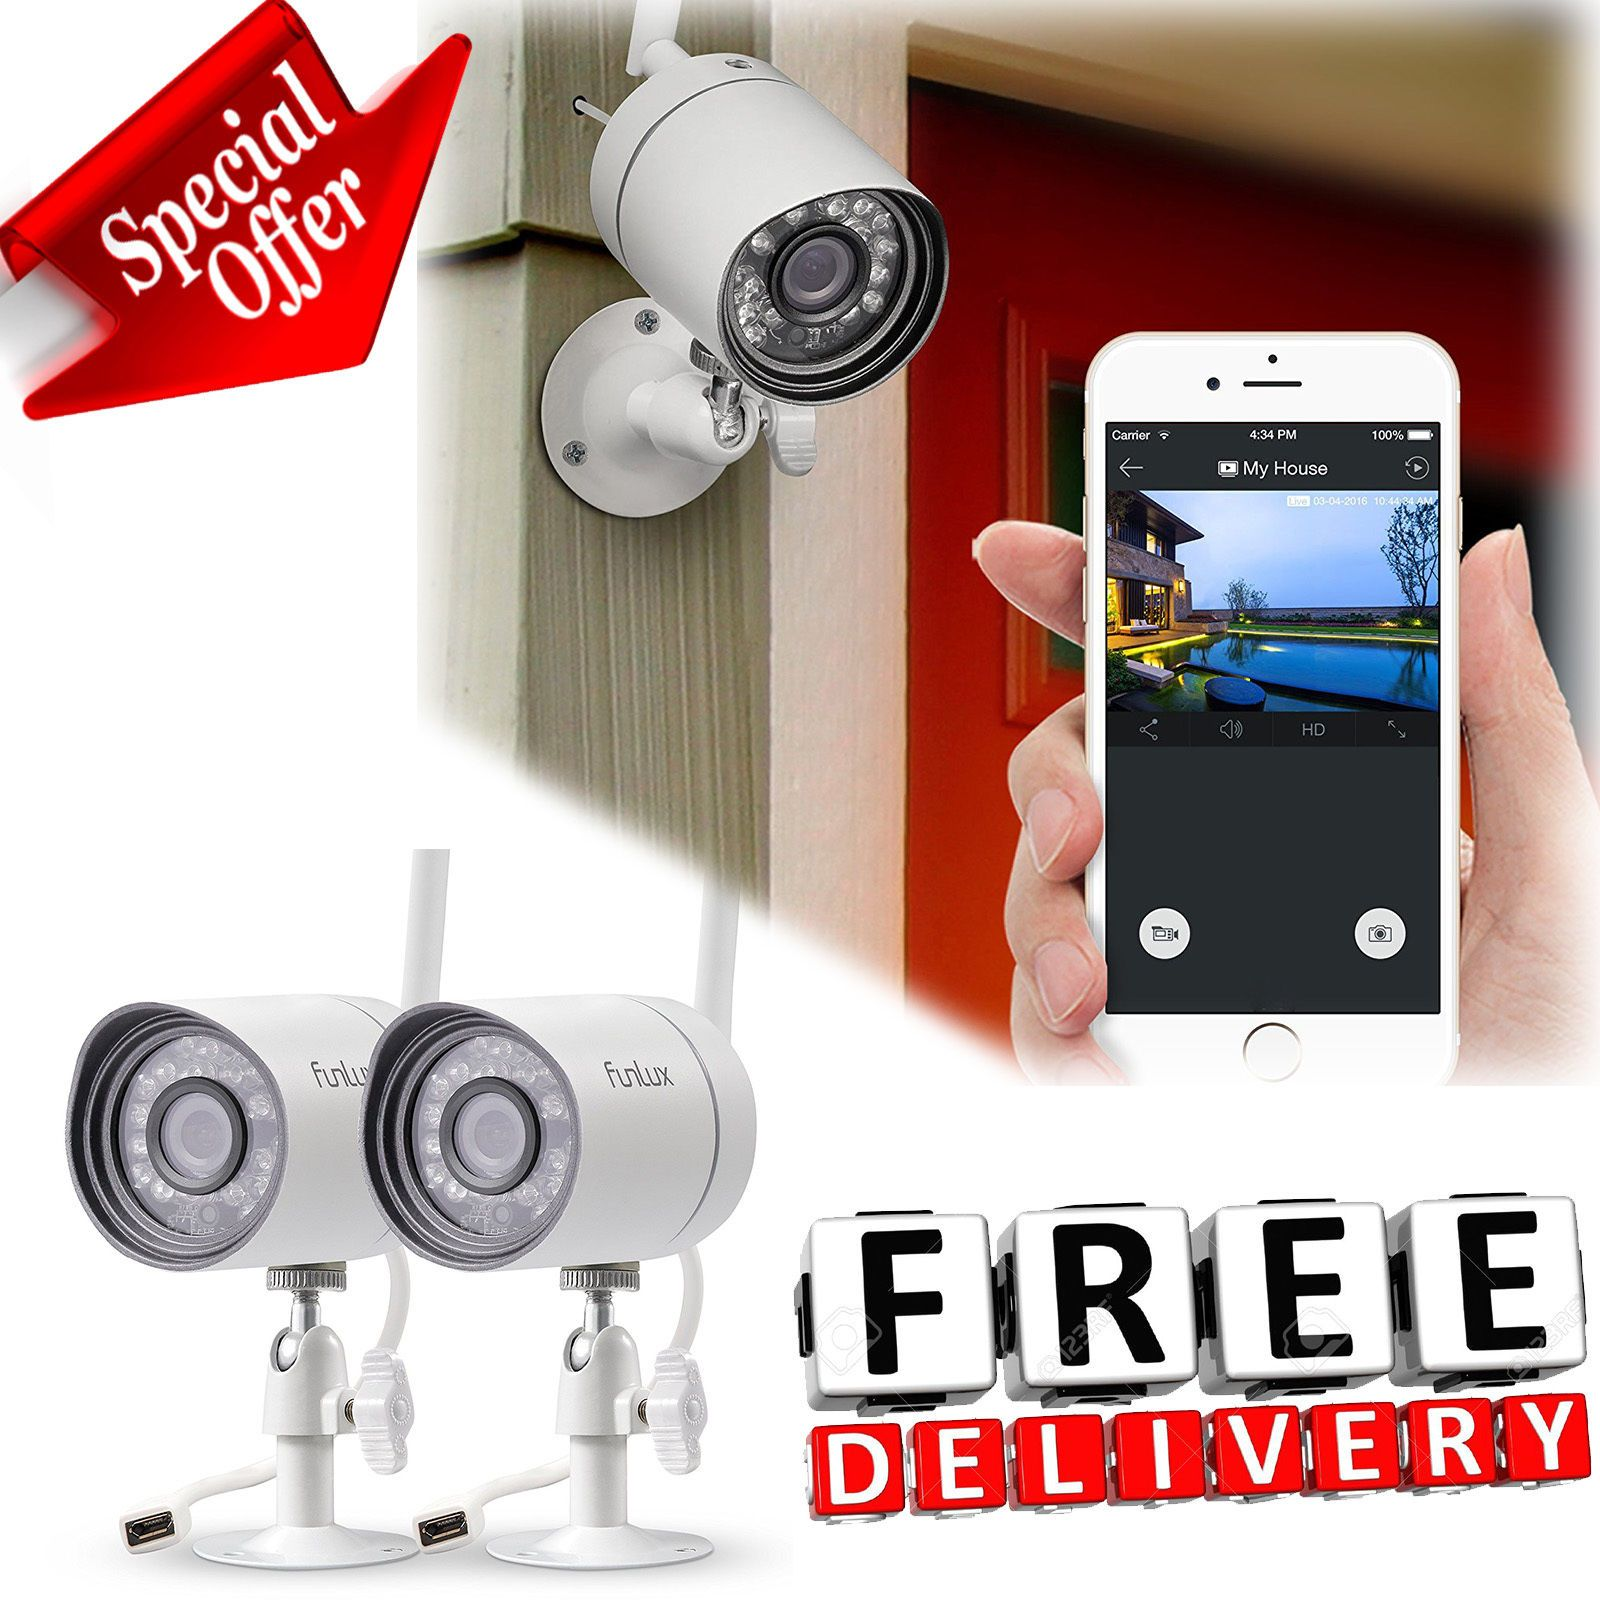 Wireless Outdoor Security Camera System 720p Video Home Indoor Night Vision New Security Camera System Outdoor Security Camera Wireless Security Camera Outdoor